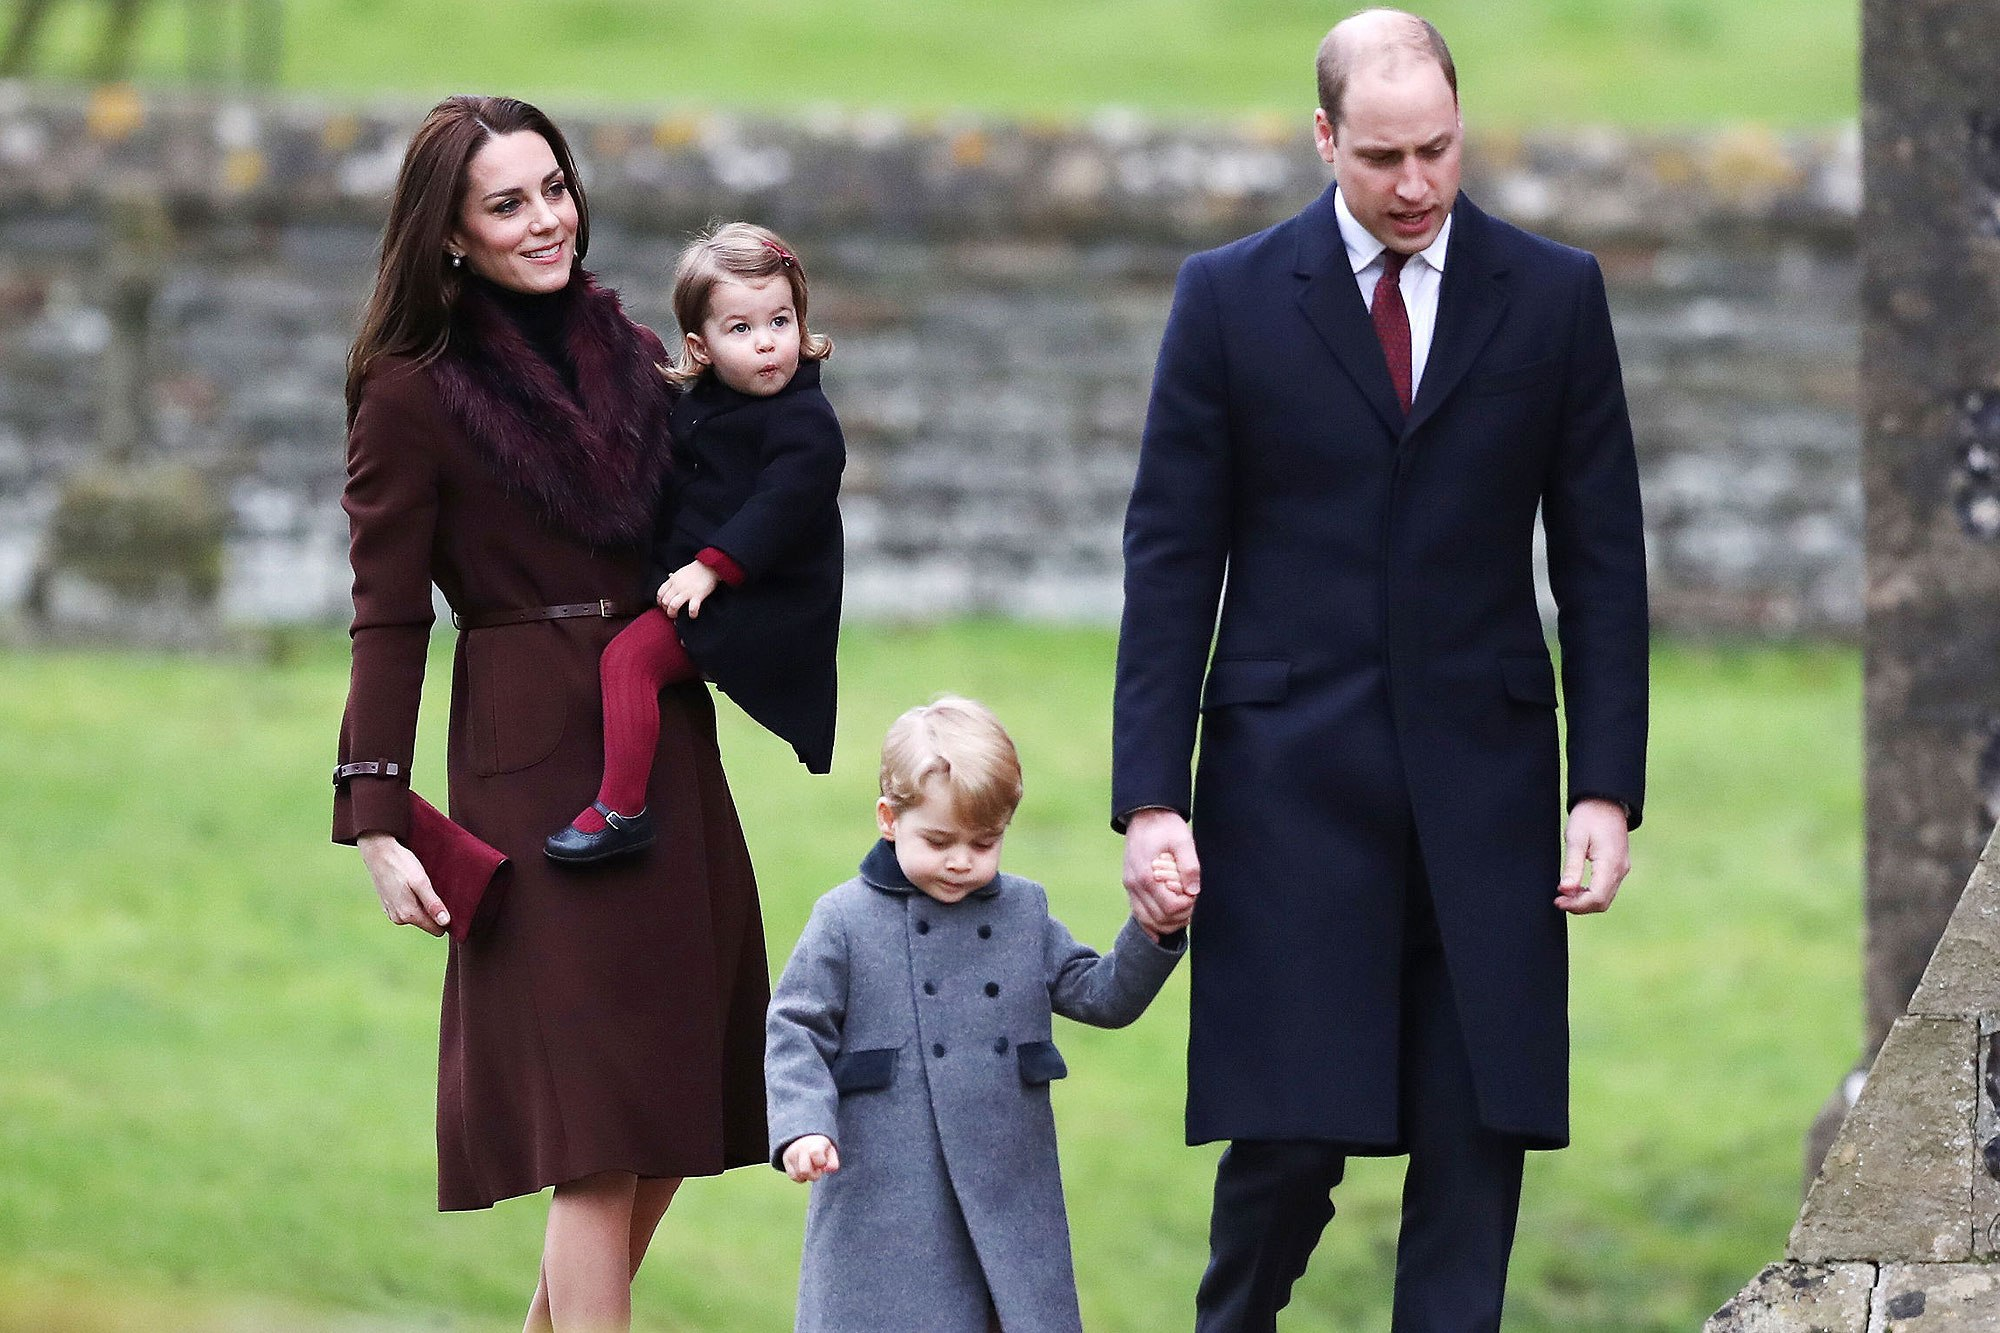 Kate Middleton Shares Prince George, Princess Charlotte's Favorite Hobby: Royals Budding Performers